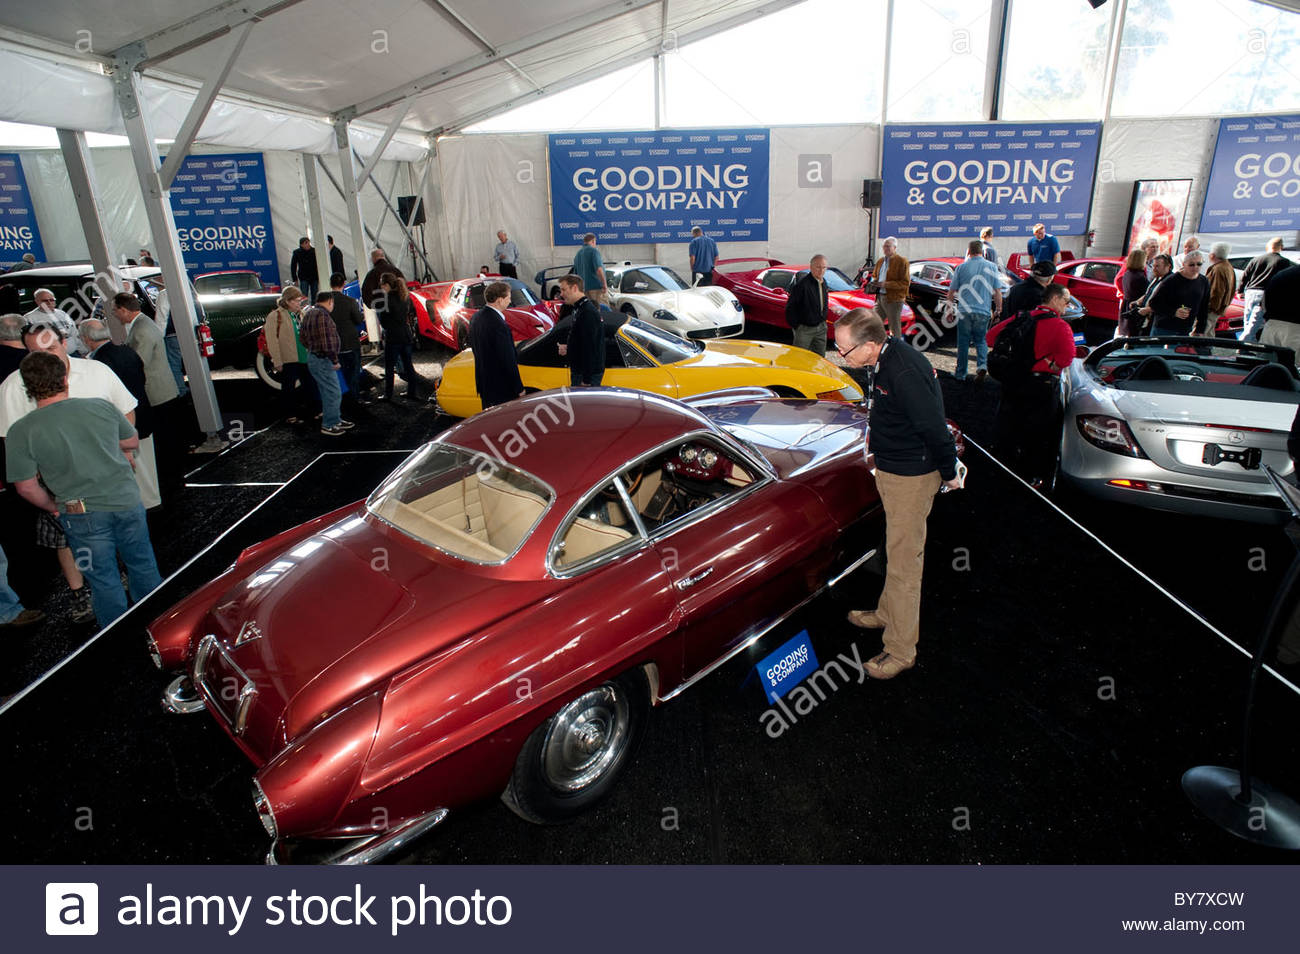 Collector Car Stock Photos & Collector Car Stock Images - Alamy